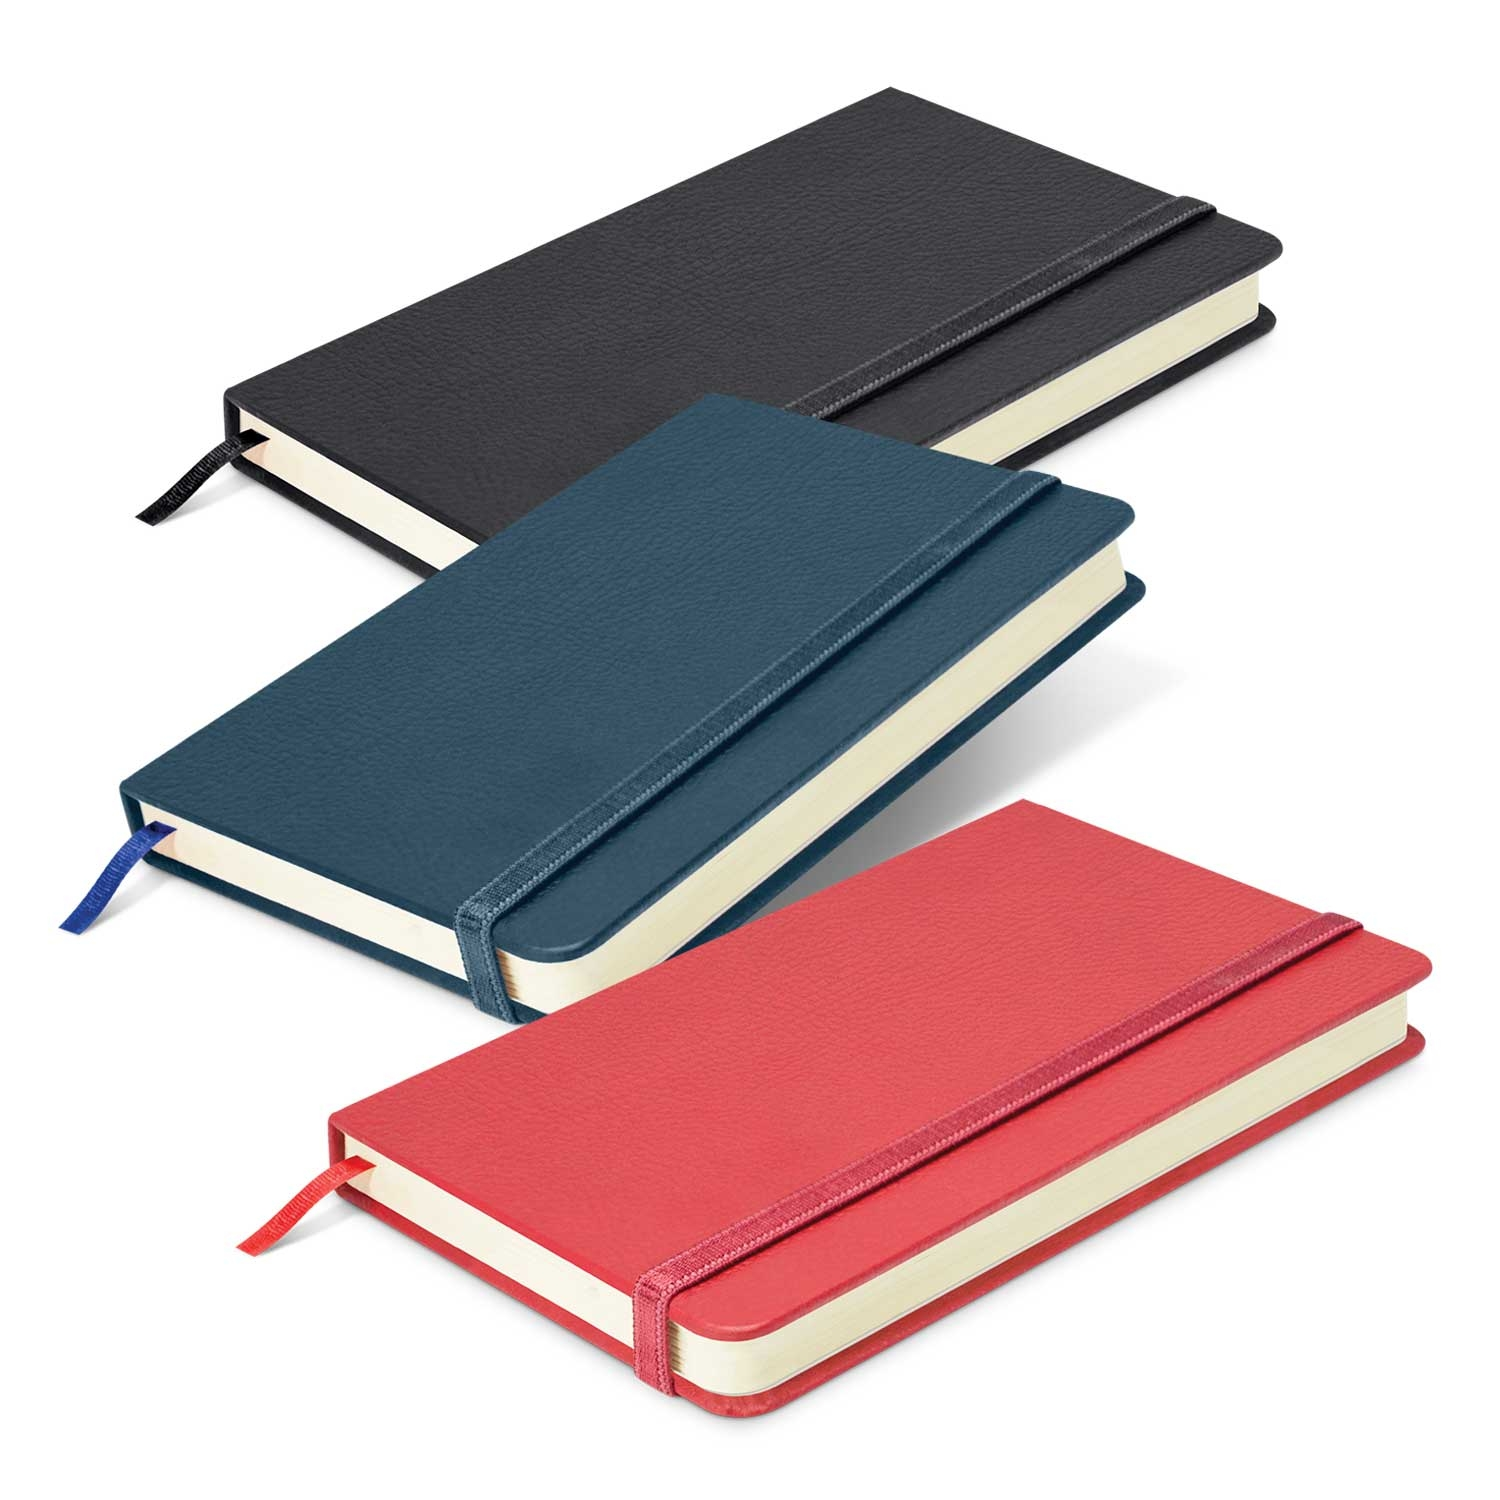 Pierre Cardin Notebook - Small